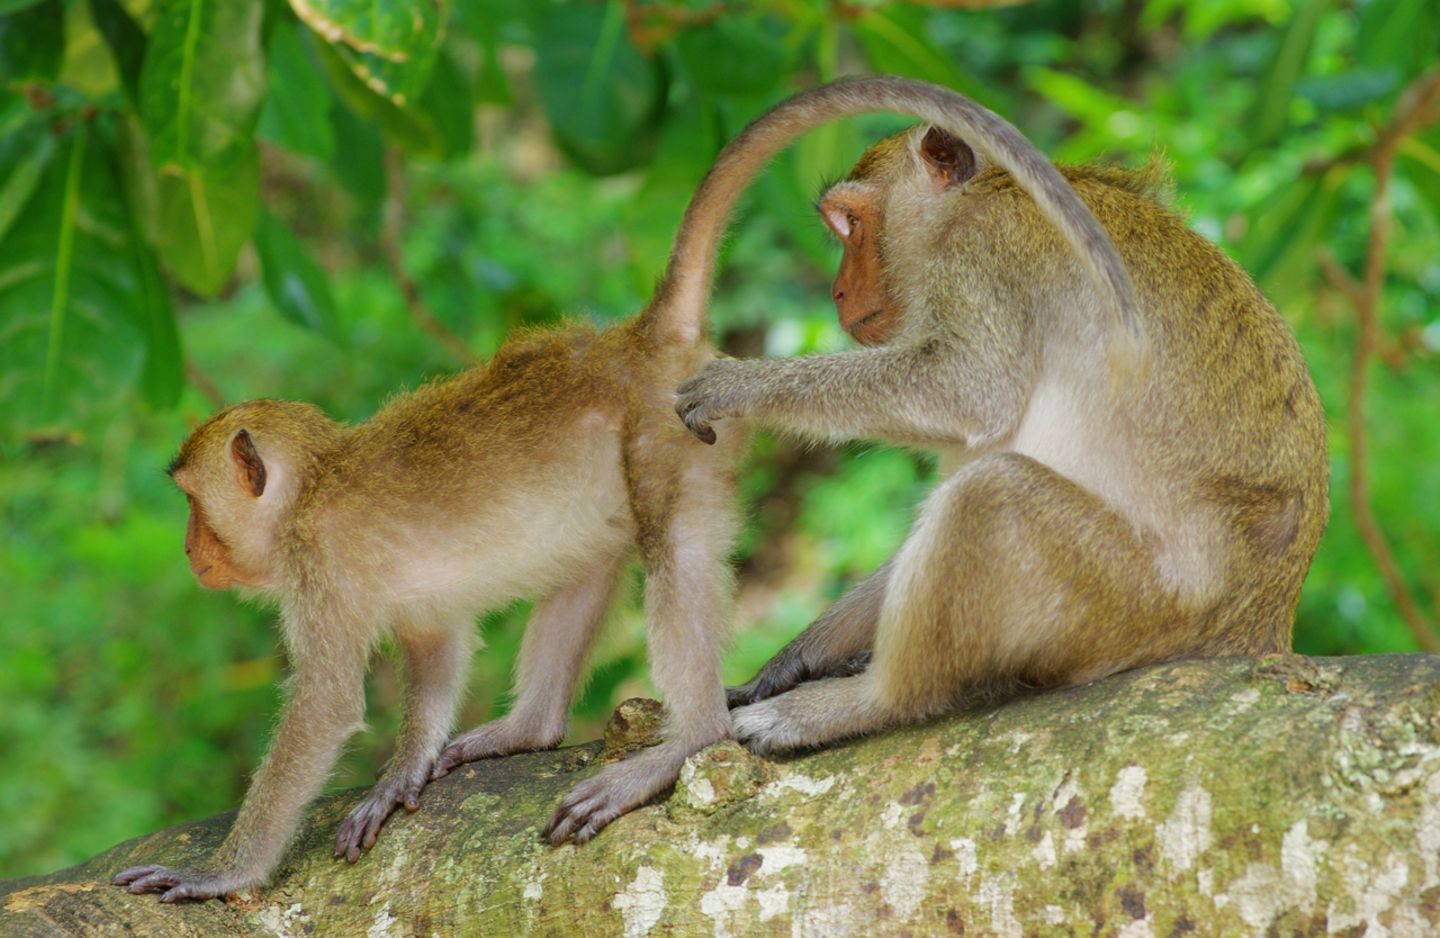 Englische Redewendung: I'll be a monkey's uncle